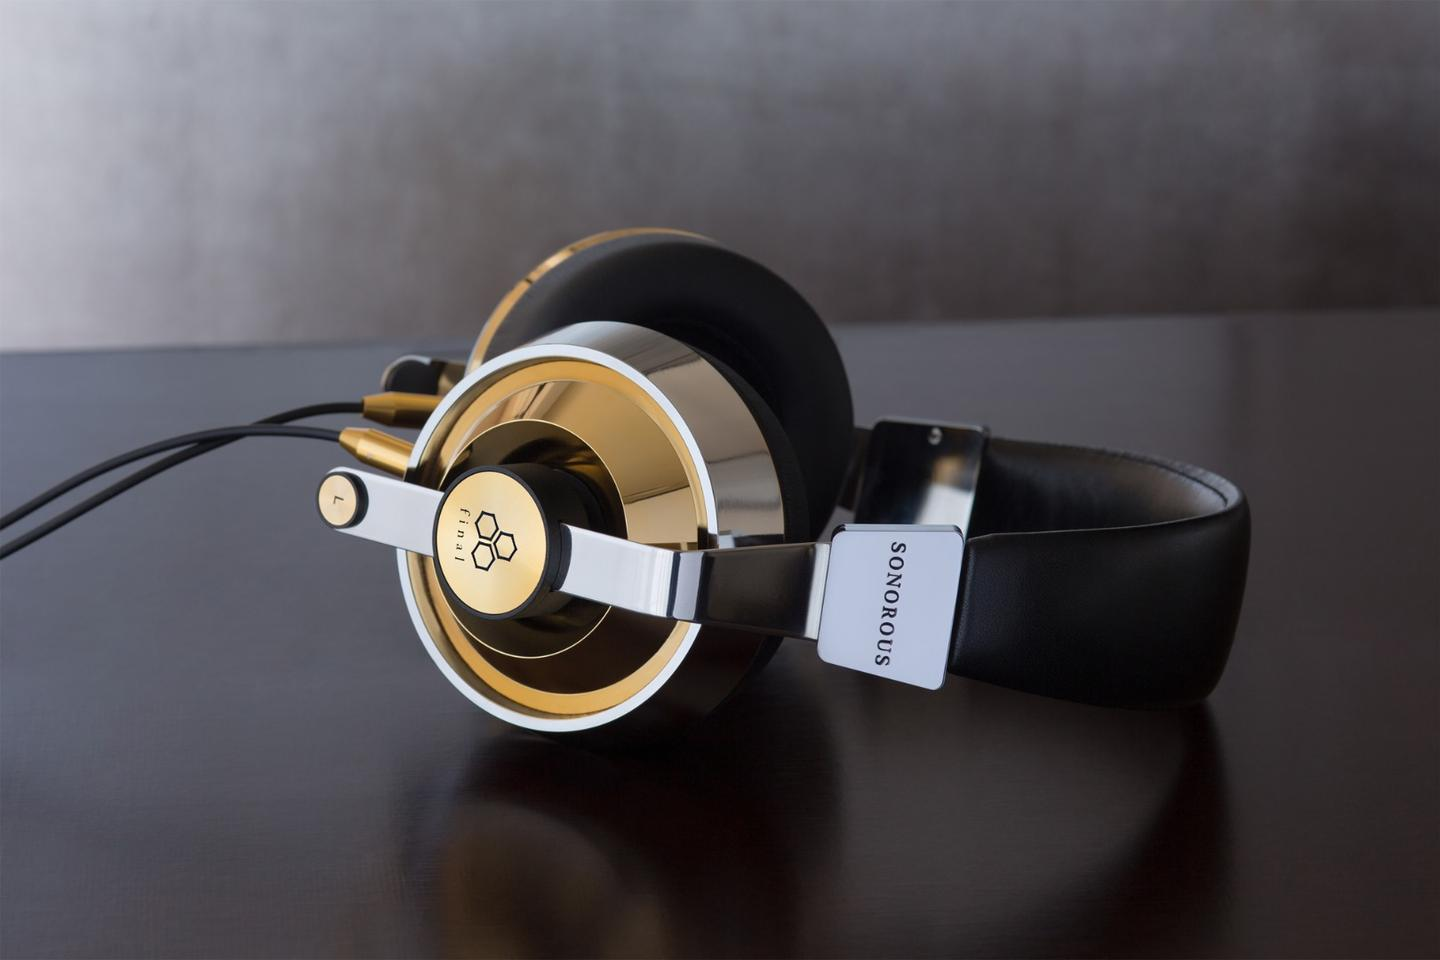 The series flagship Sonorous X headphones released in 2015